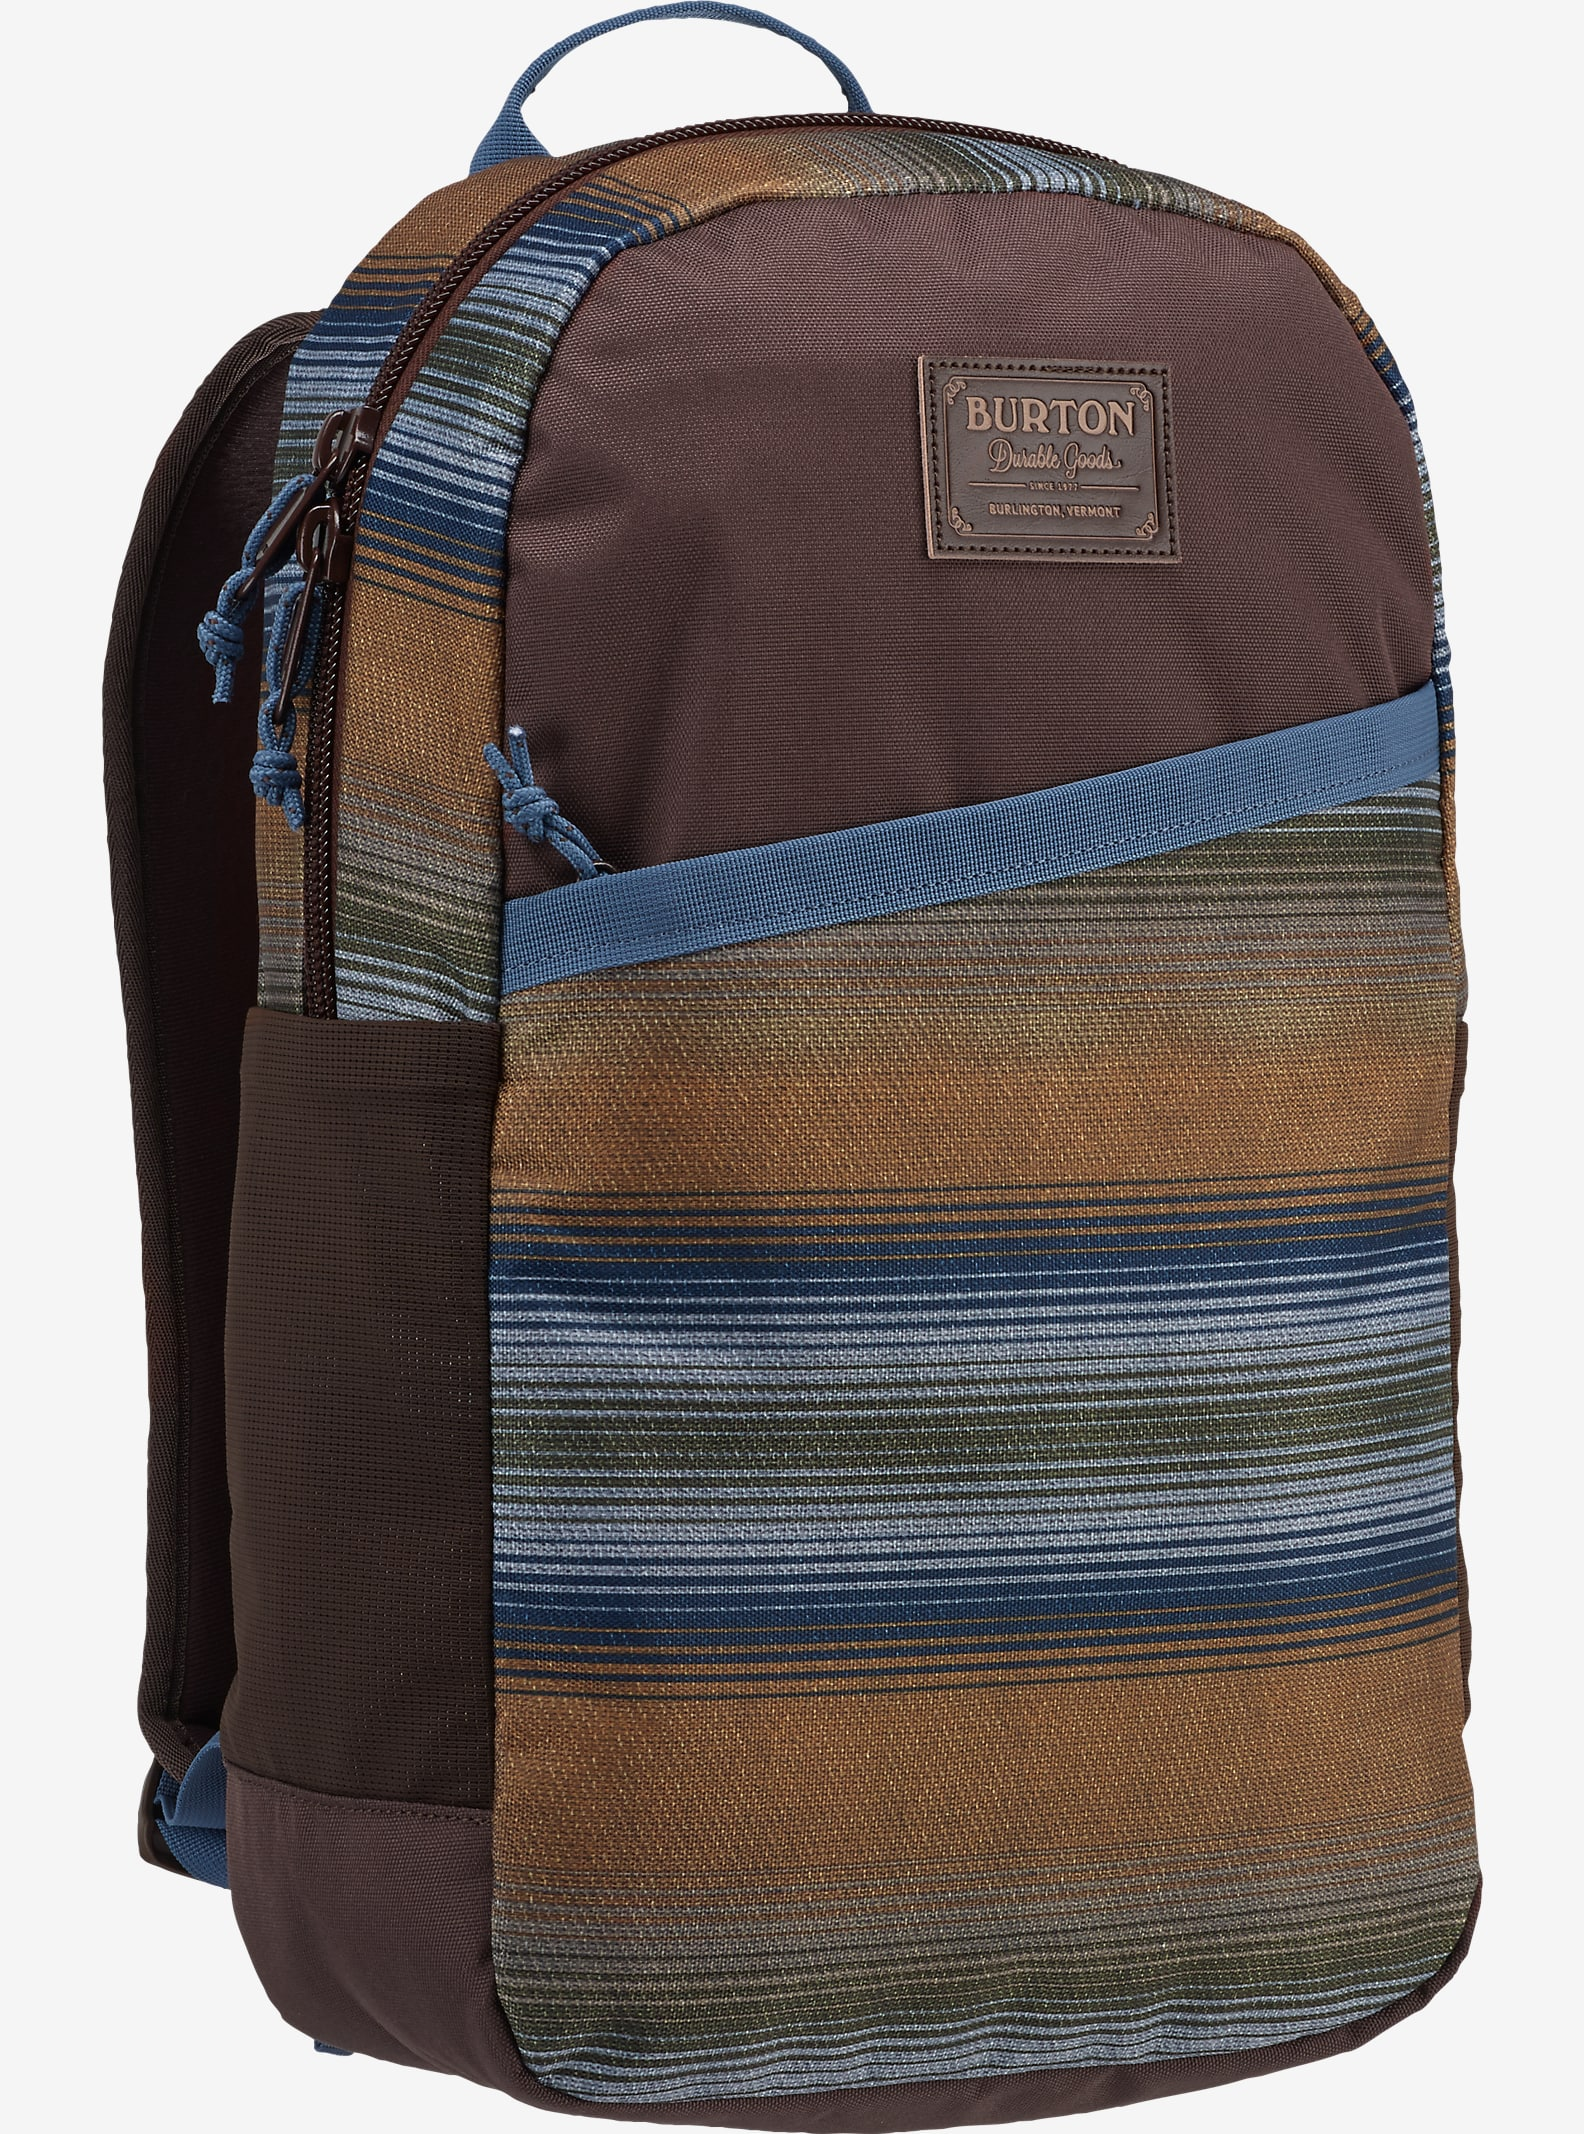 Burton Apollo Backpack shown in Beach Stripe Print